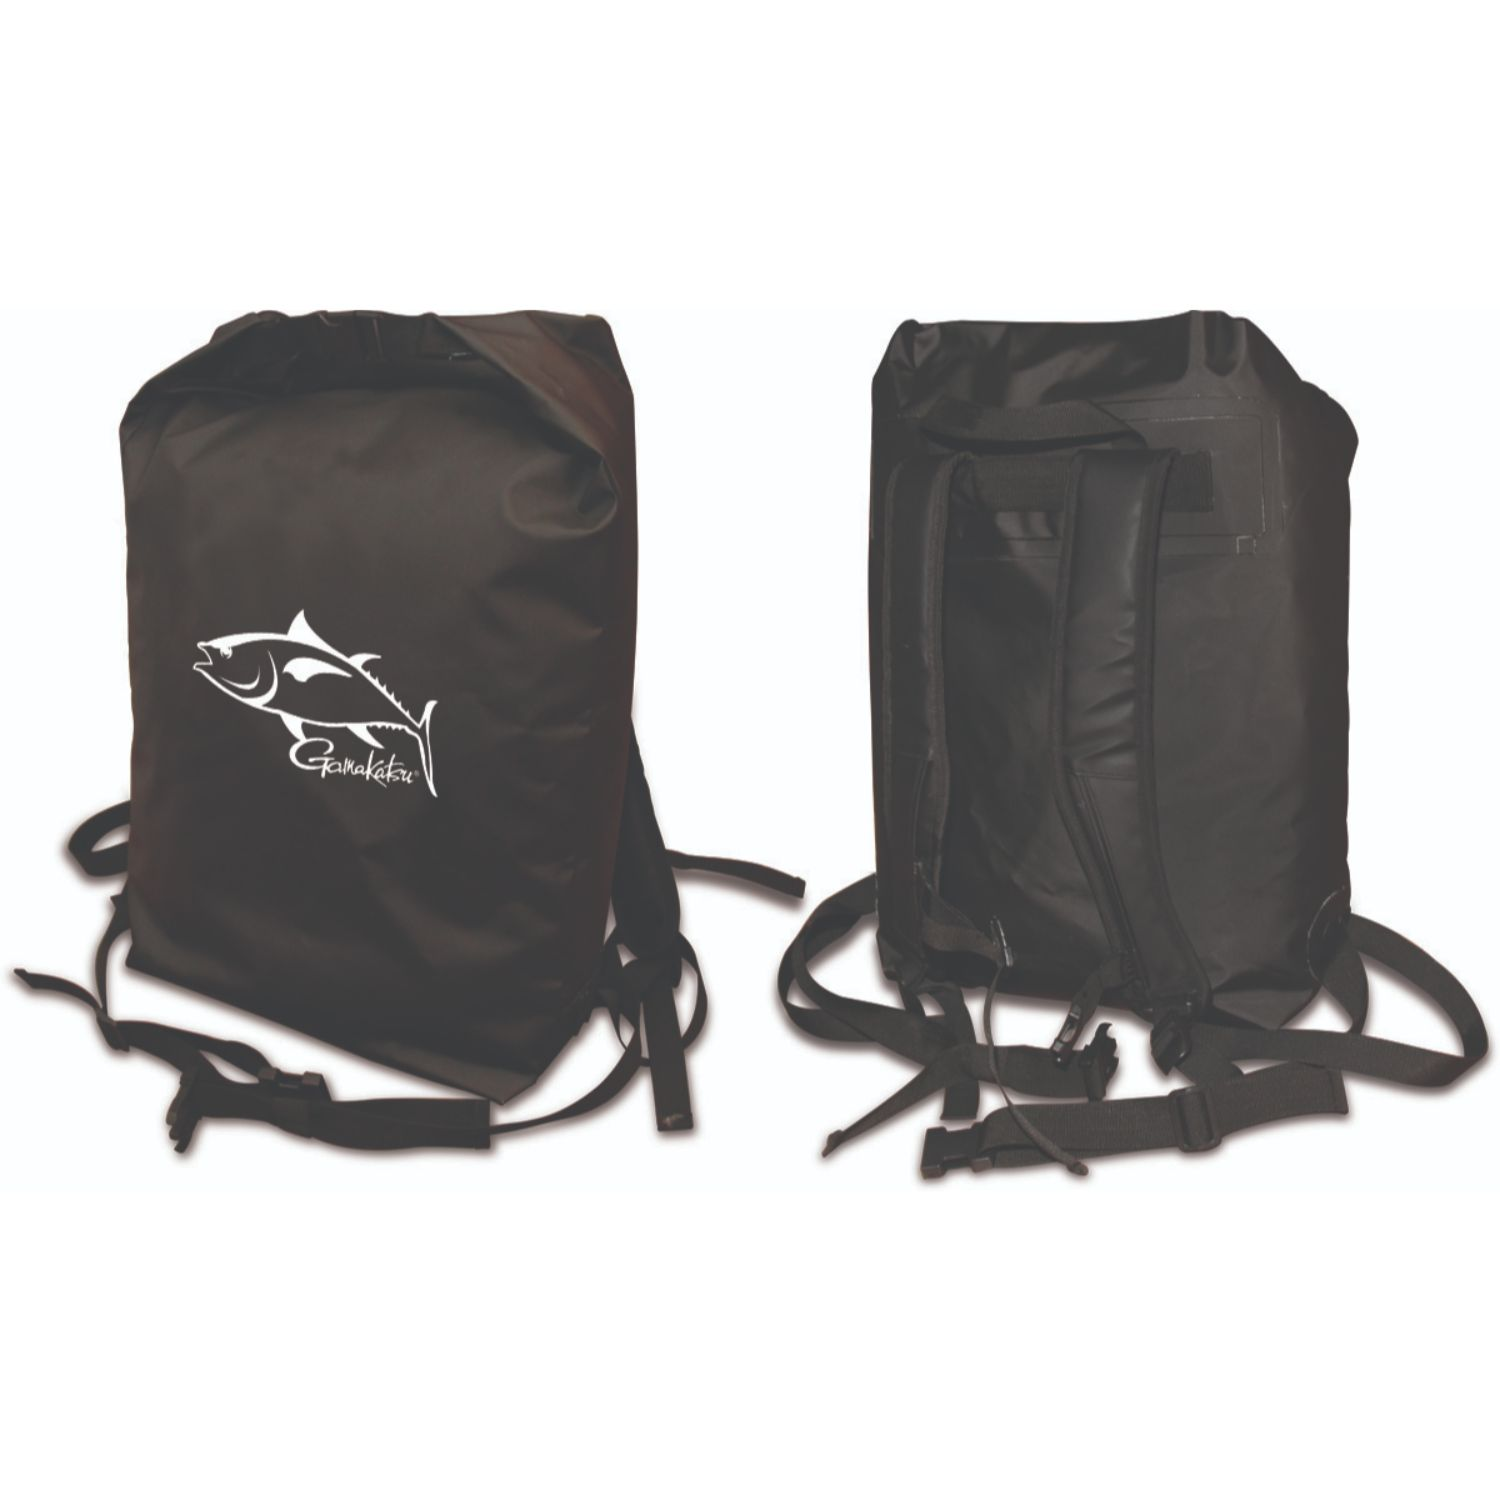 Gamakatsu Waterproof Backpack-Tuna